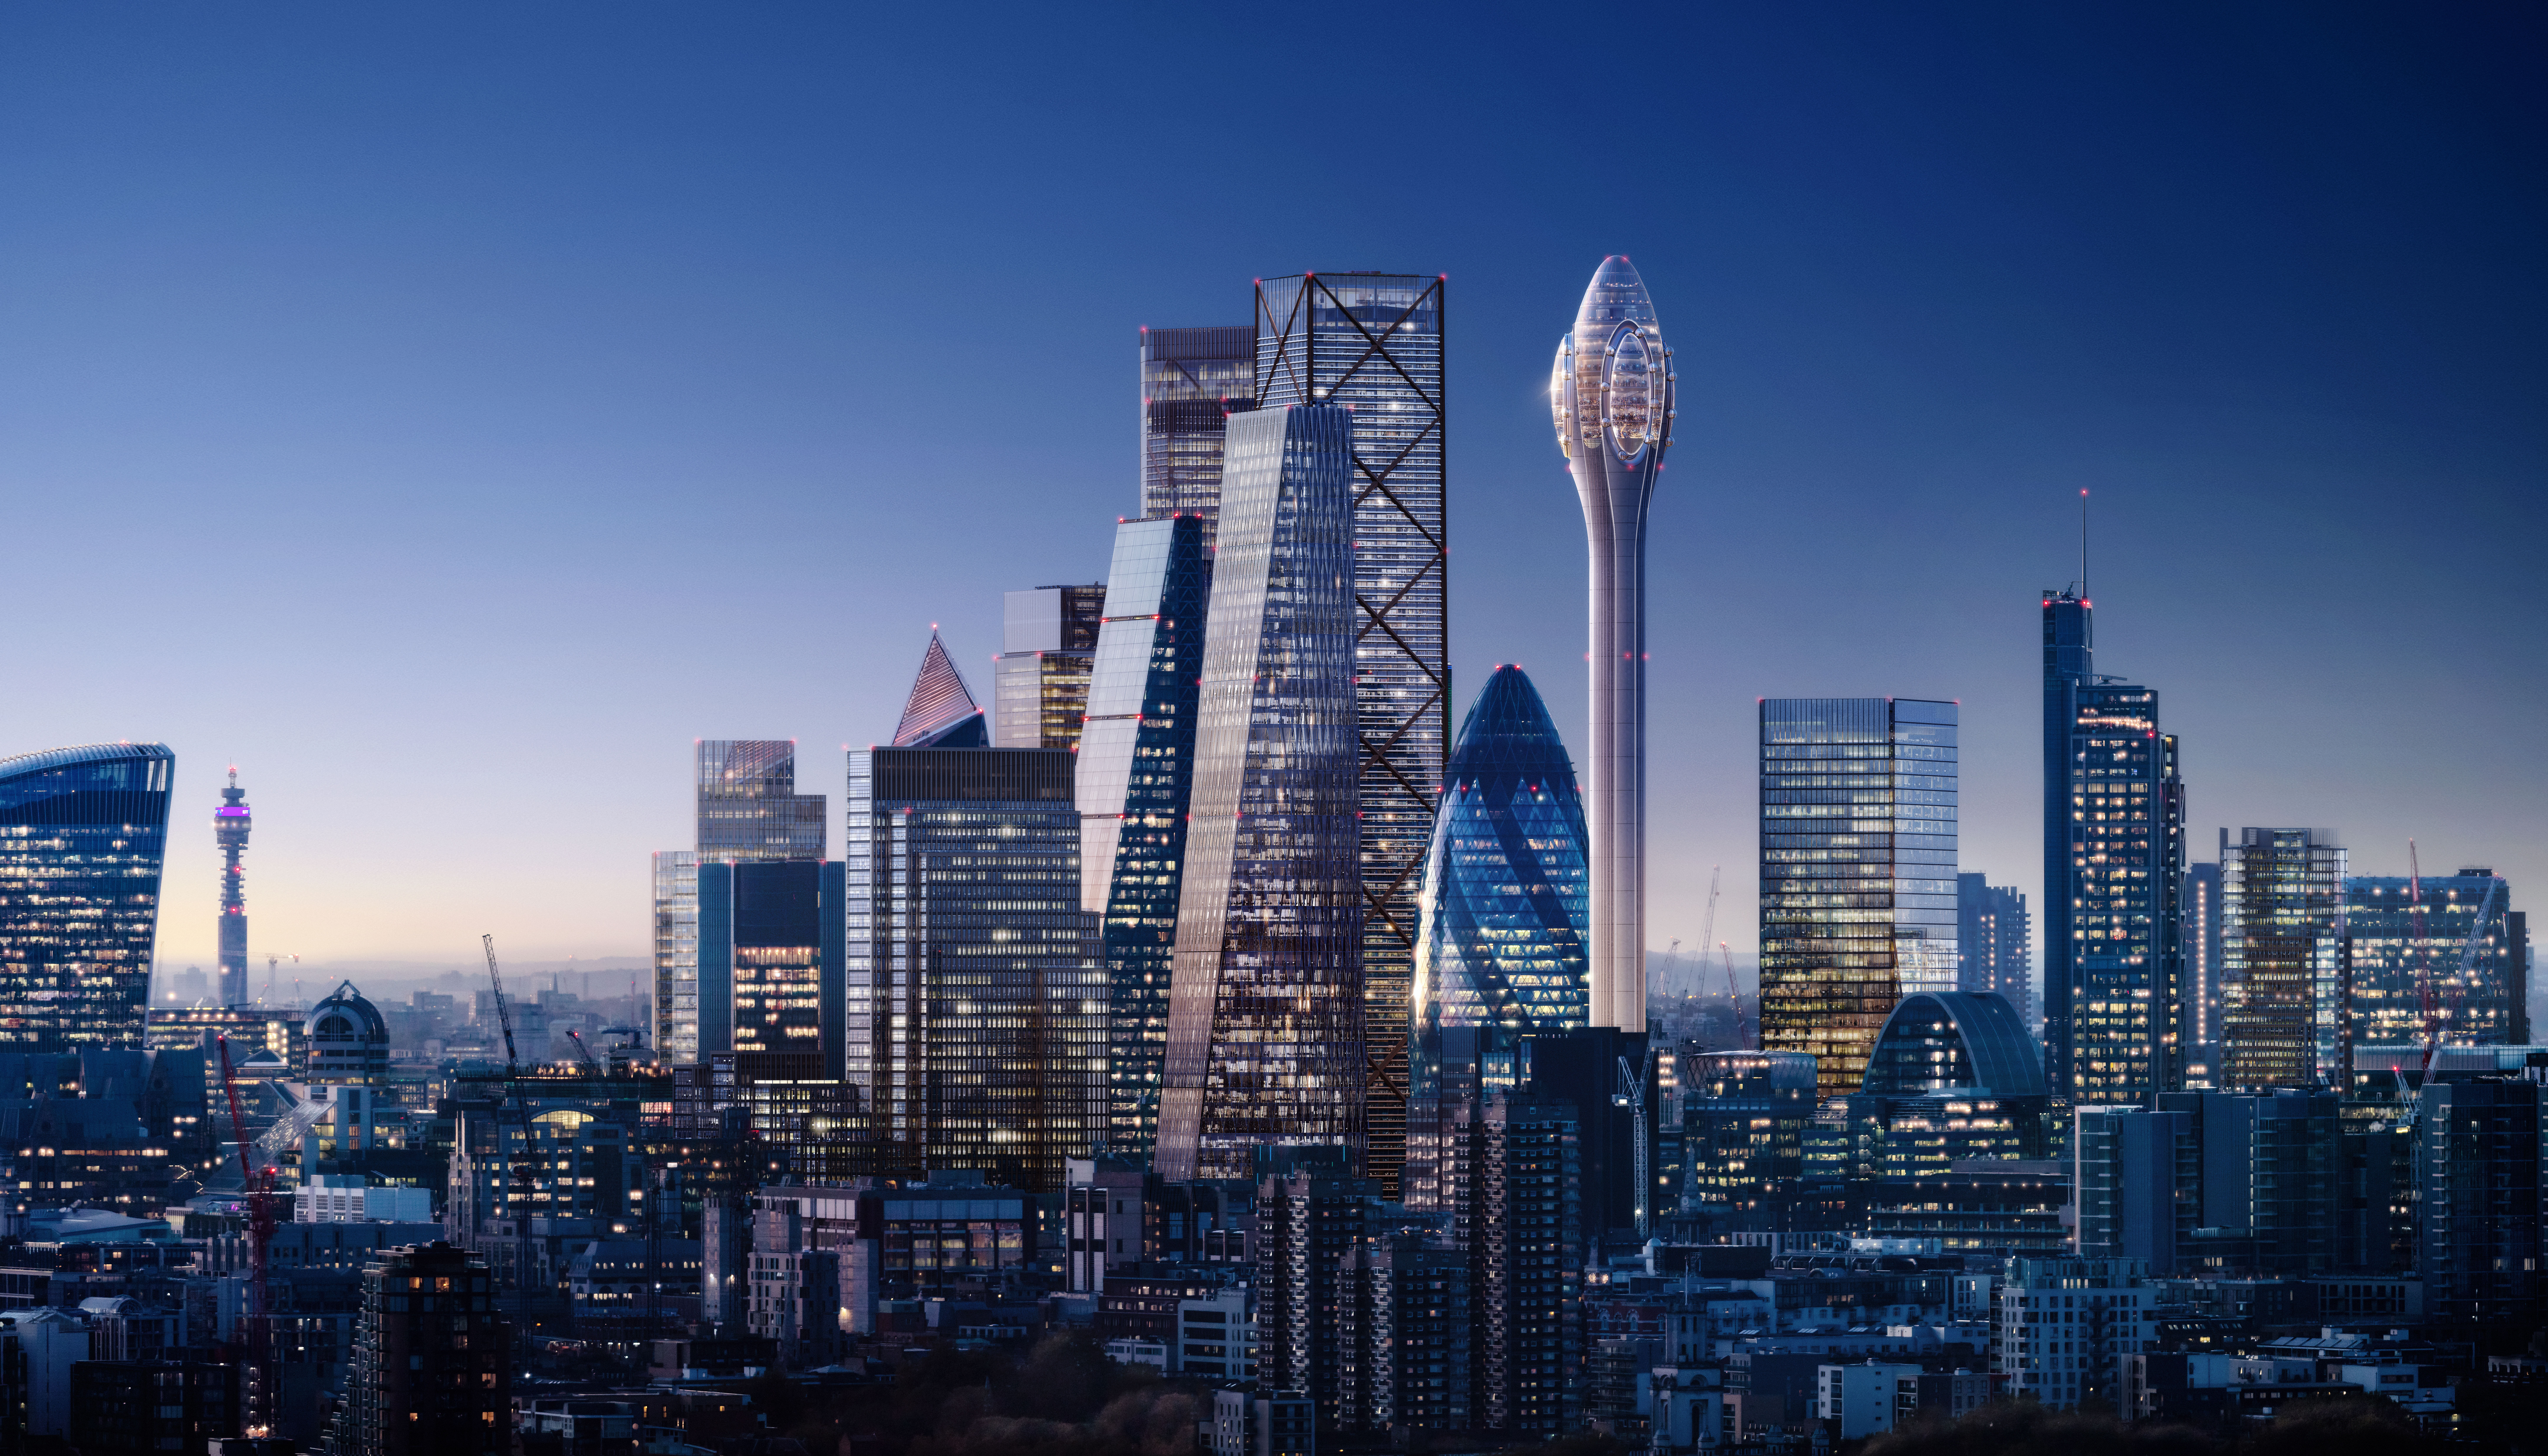 DEBATE: Was Sadiq Khan right to reject  plans for the Tulip tower?